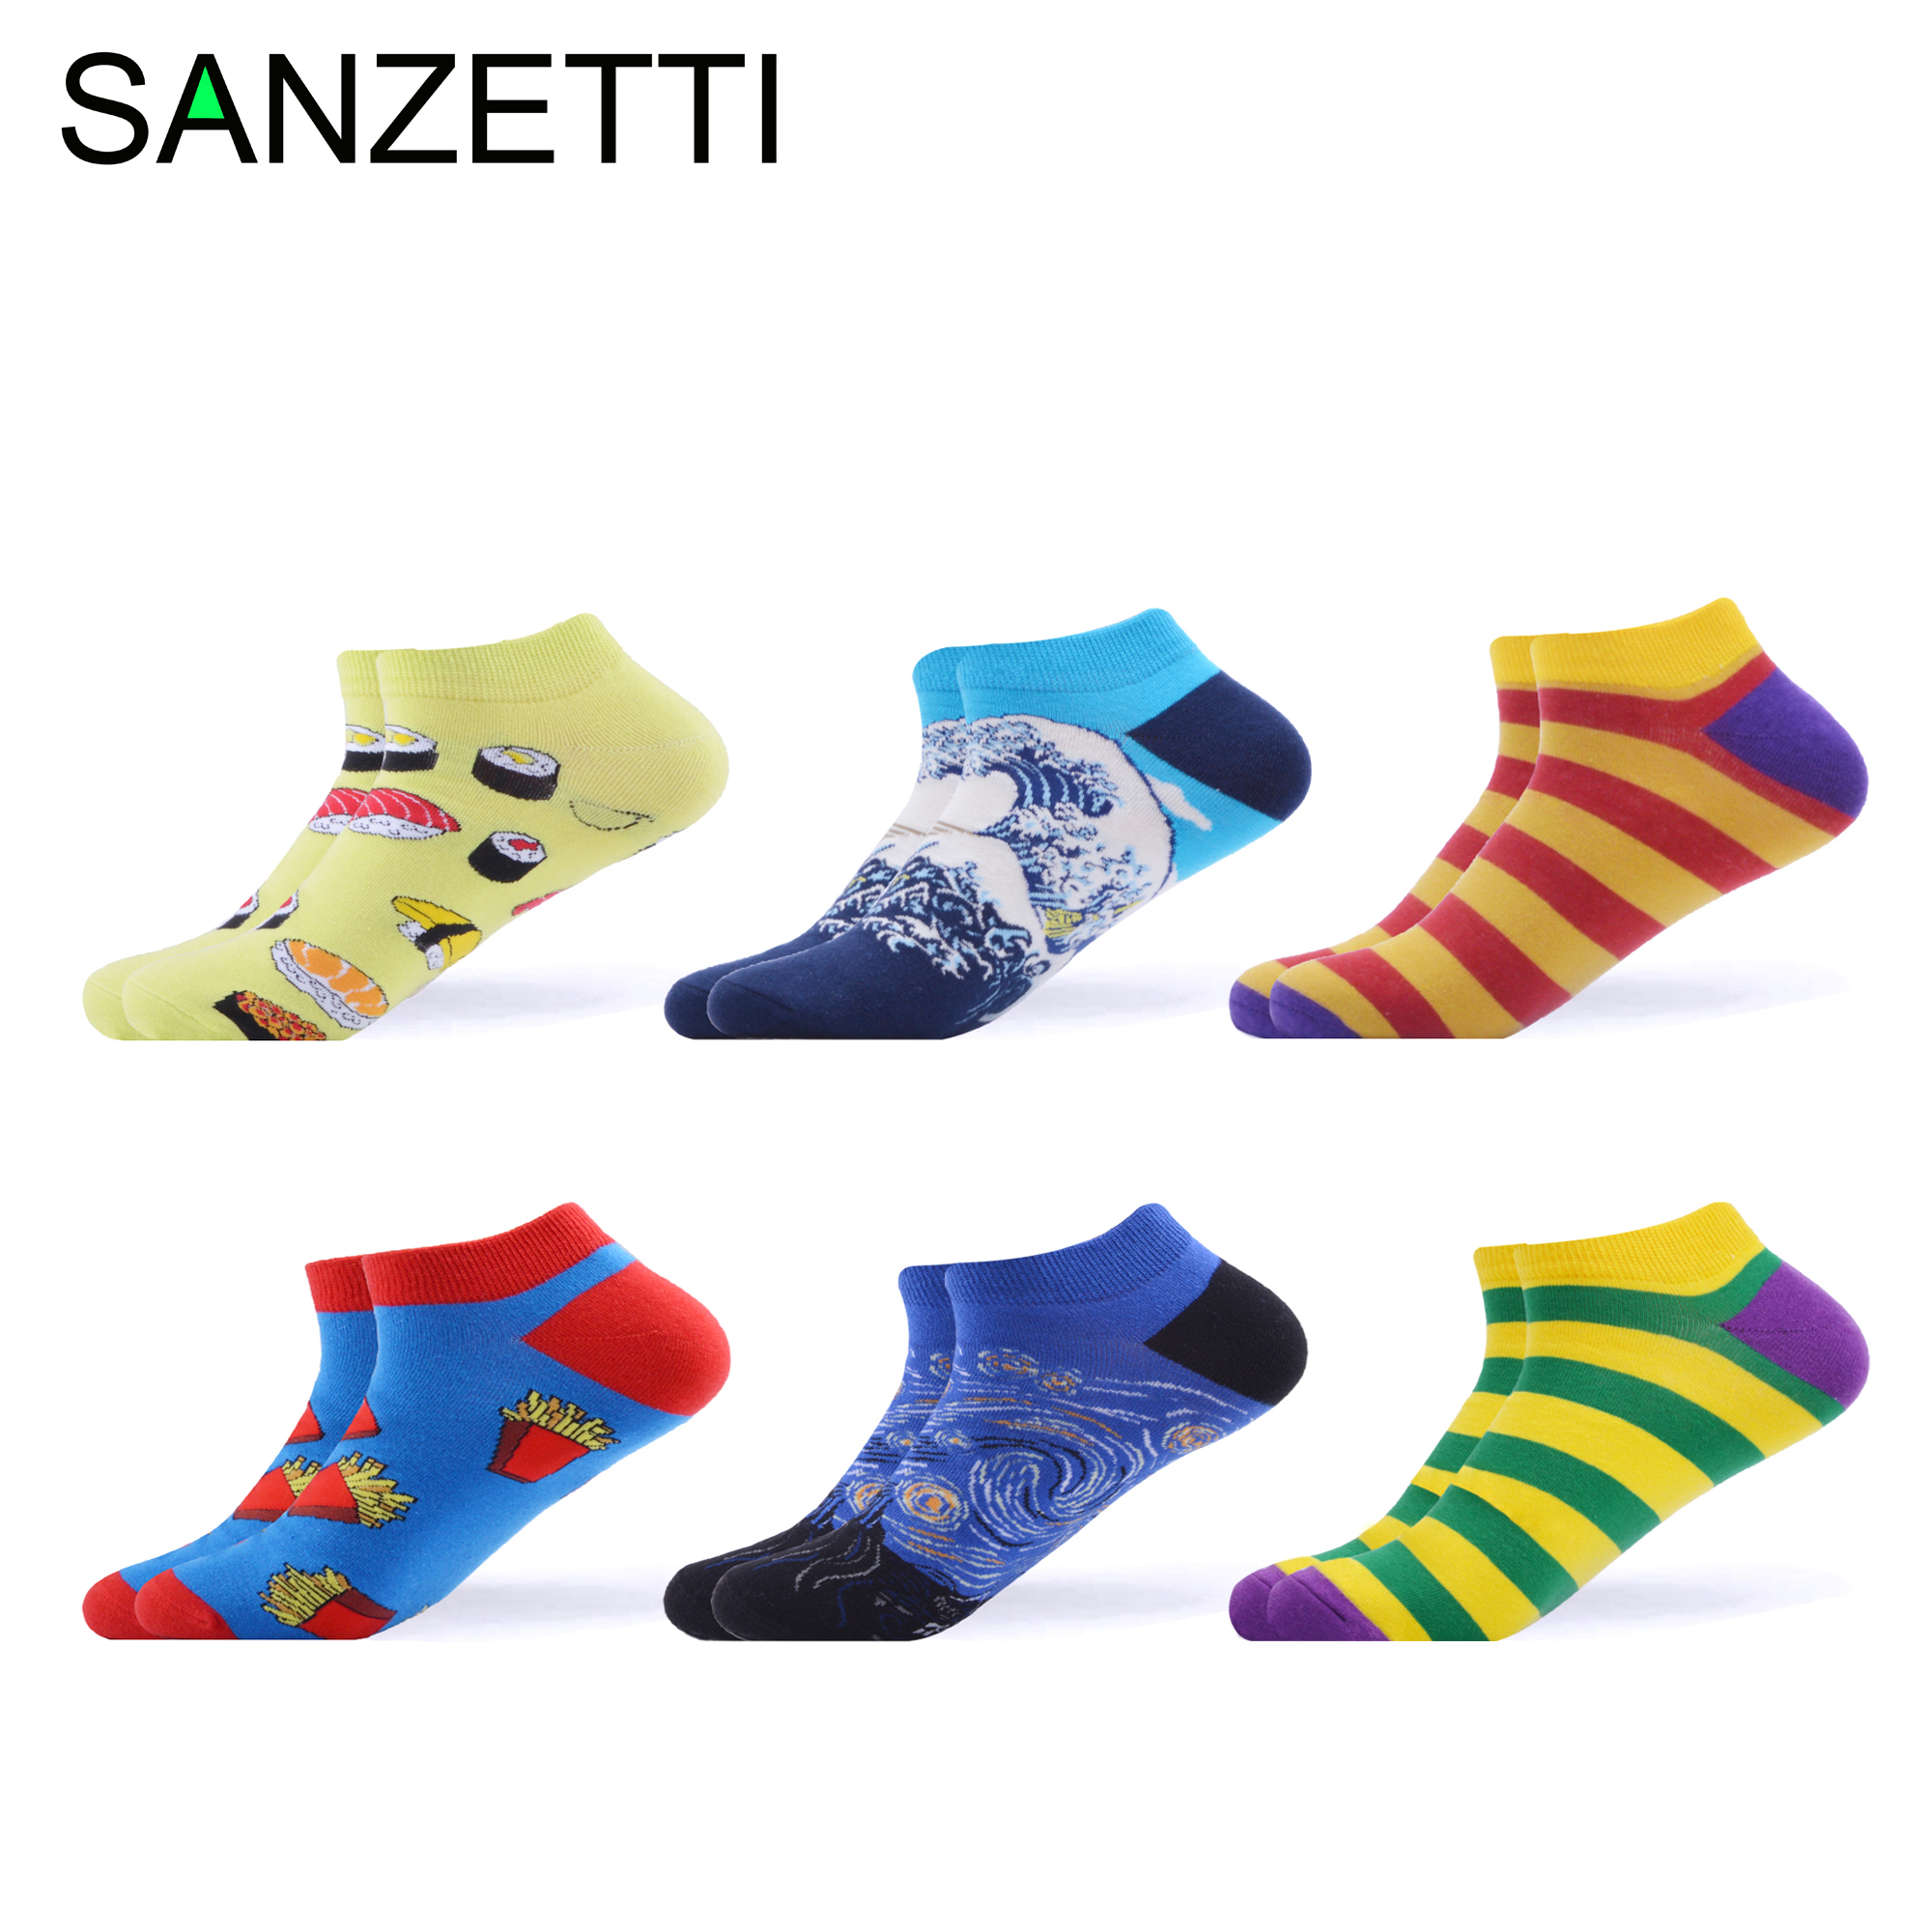 SANZETTI 6 Pairs Of Summer Leisure Ankle Socks Novel Breathable Comfortable Combed Cotton Happy Wave Striped Dress Outdoor Socks